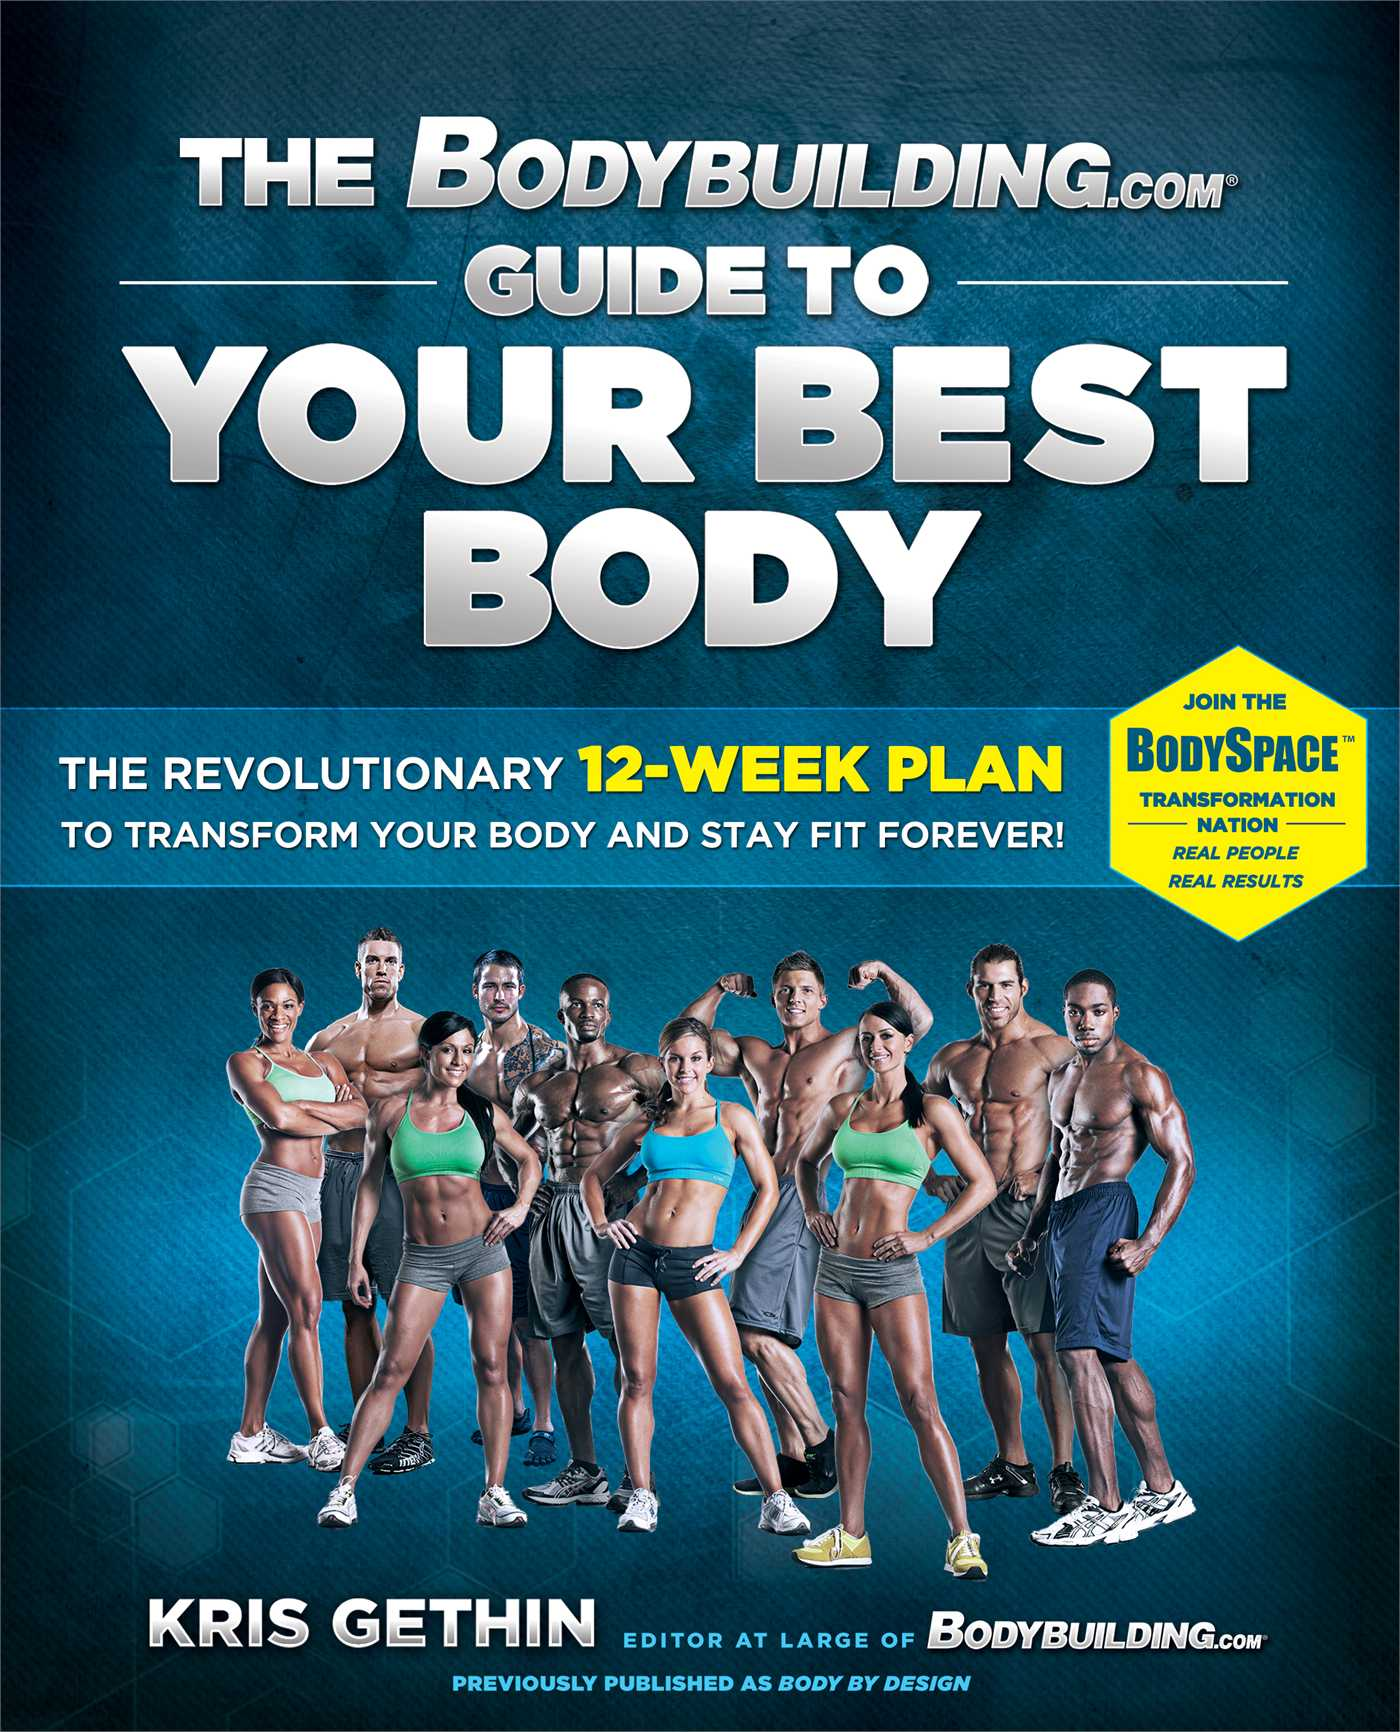 The Bodybuilding Com Guide To Your Best Body Book By Kris Gethin Jamie Eason Official Publisher Page Simon Schuster Canada